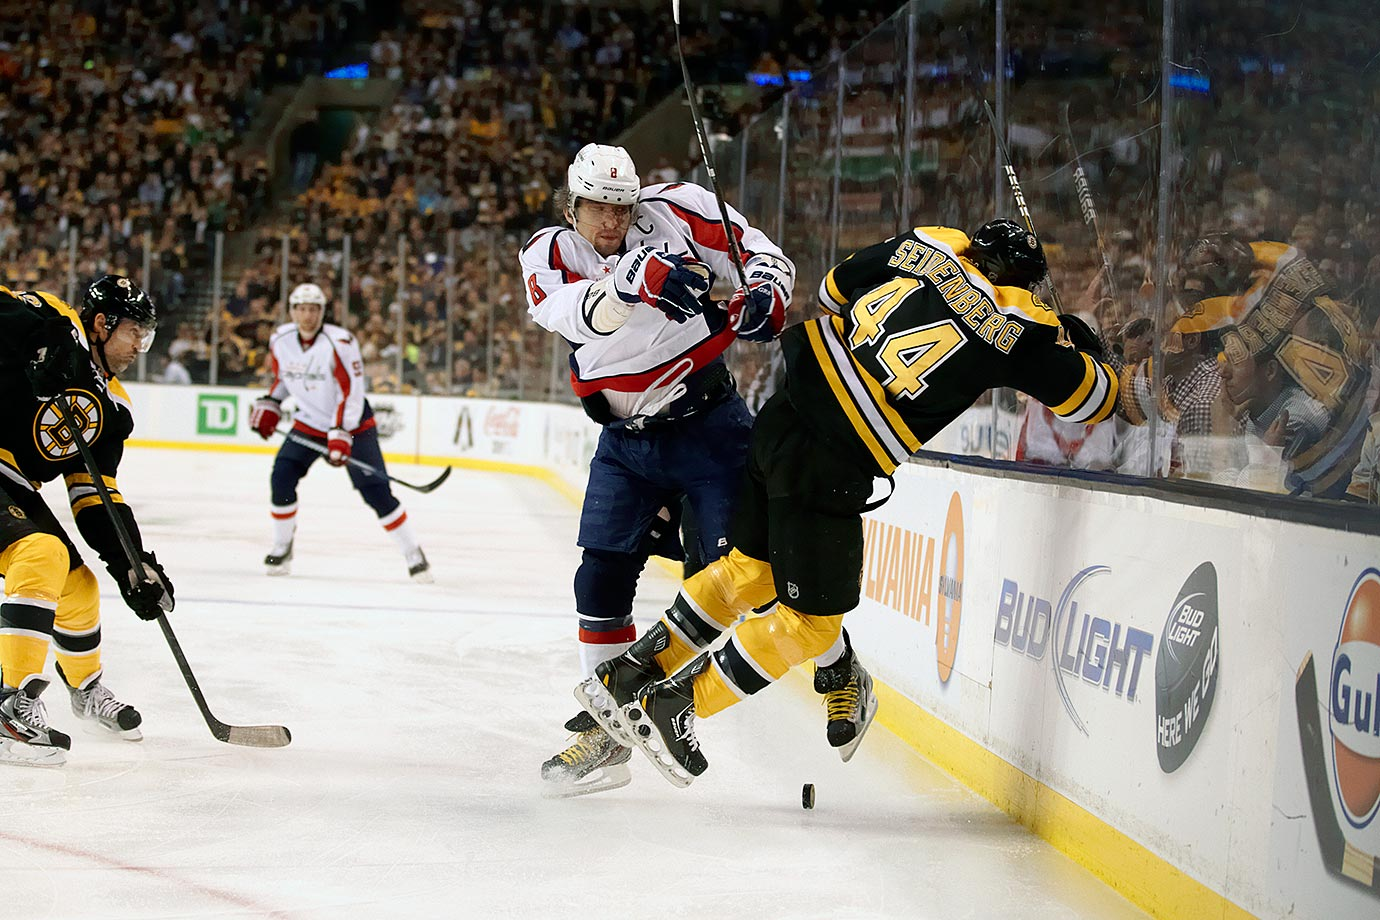 April 25, 2012 — NHL Eastern Conference Quarterfinals, Game 7